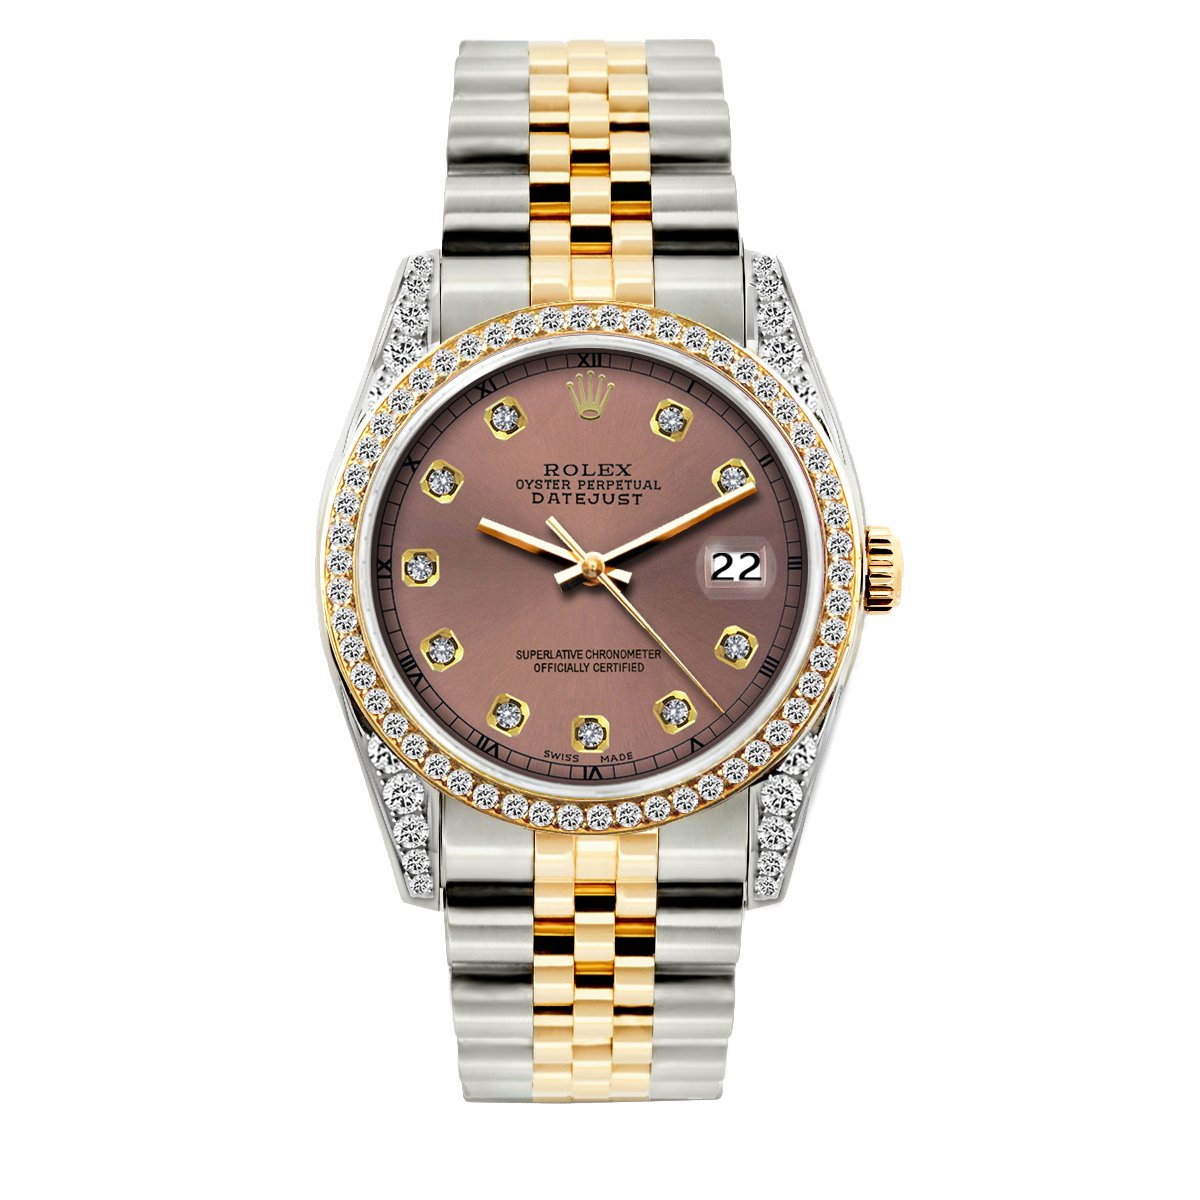 Rolex Datejust Diamond Watch, 36mm, Yellow Gold and Stainless Steel Bracelet Earthen Dial w/ Diamond Bezel and Lugs